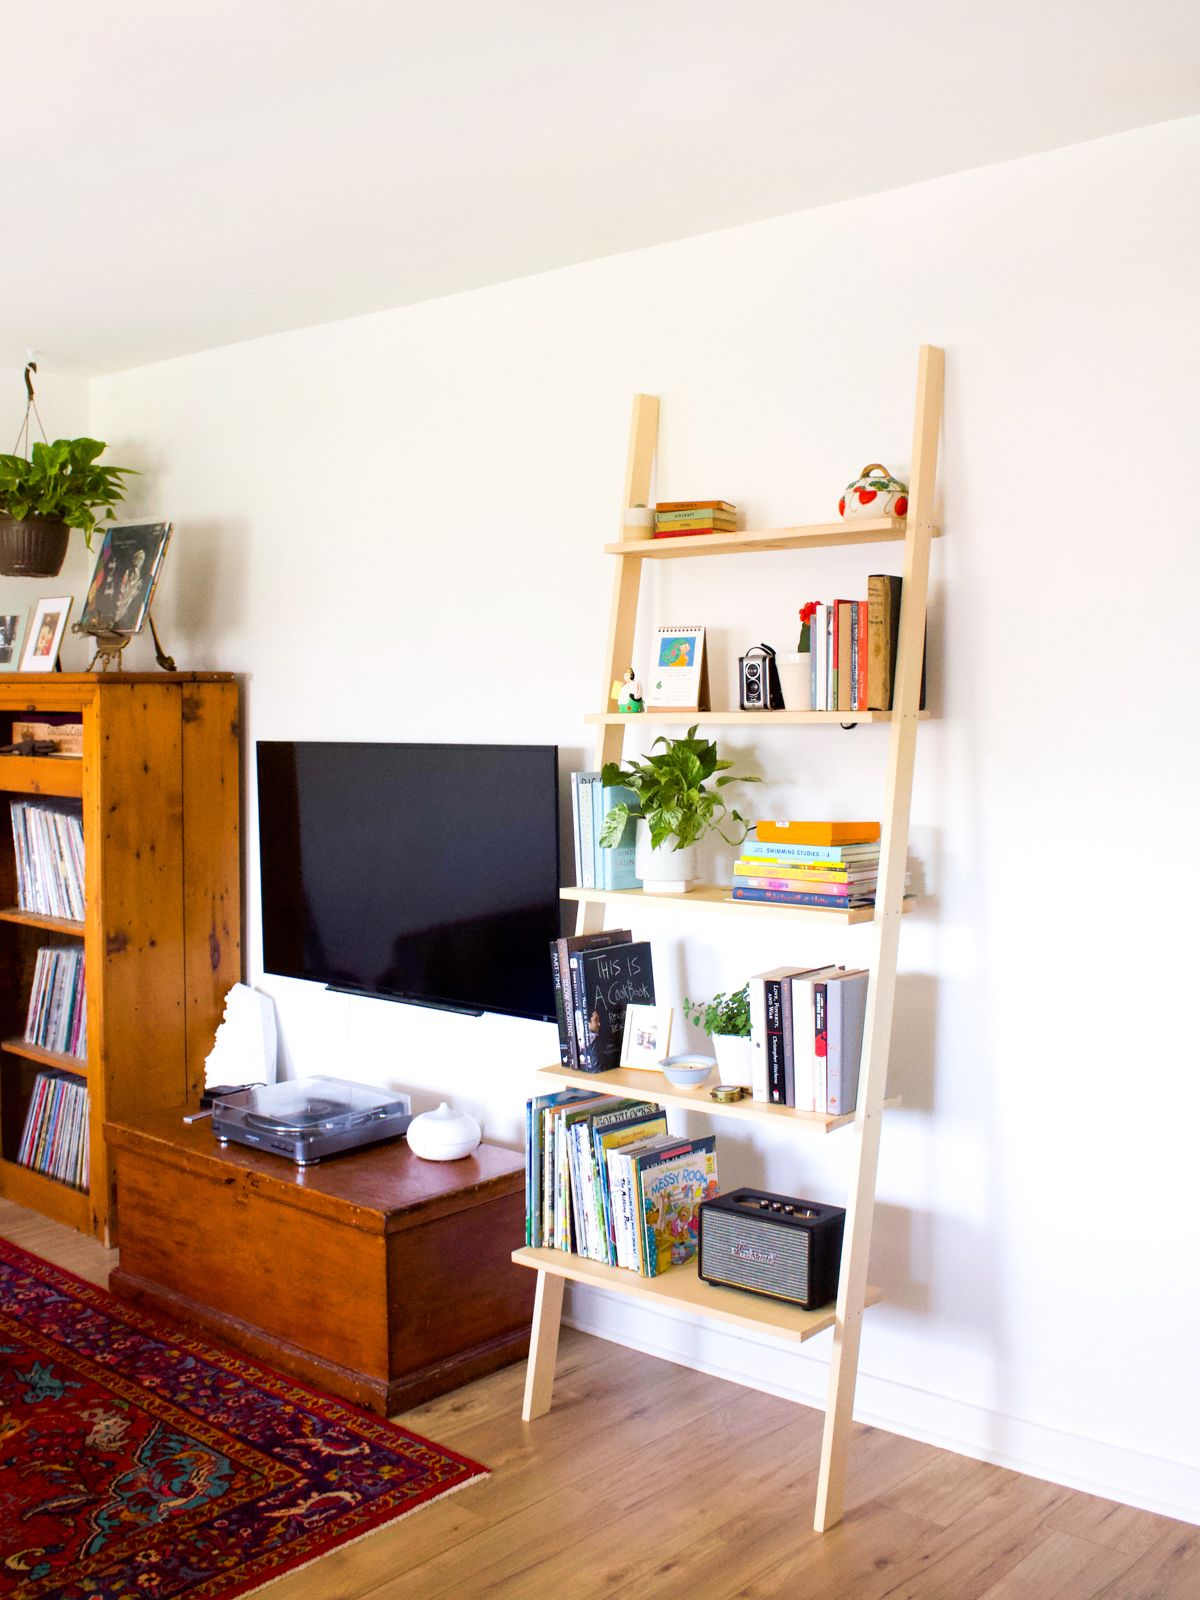 How to Build a DIY Leaning Bookshelf Fish & Bull in 2020